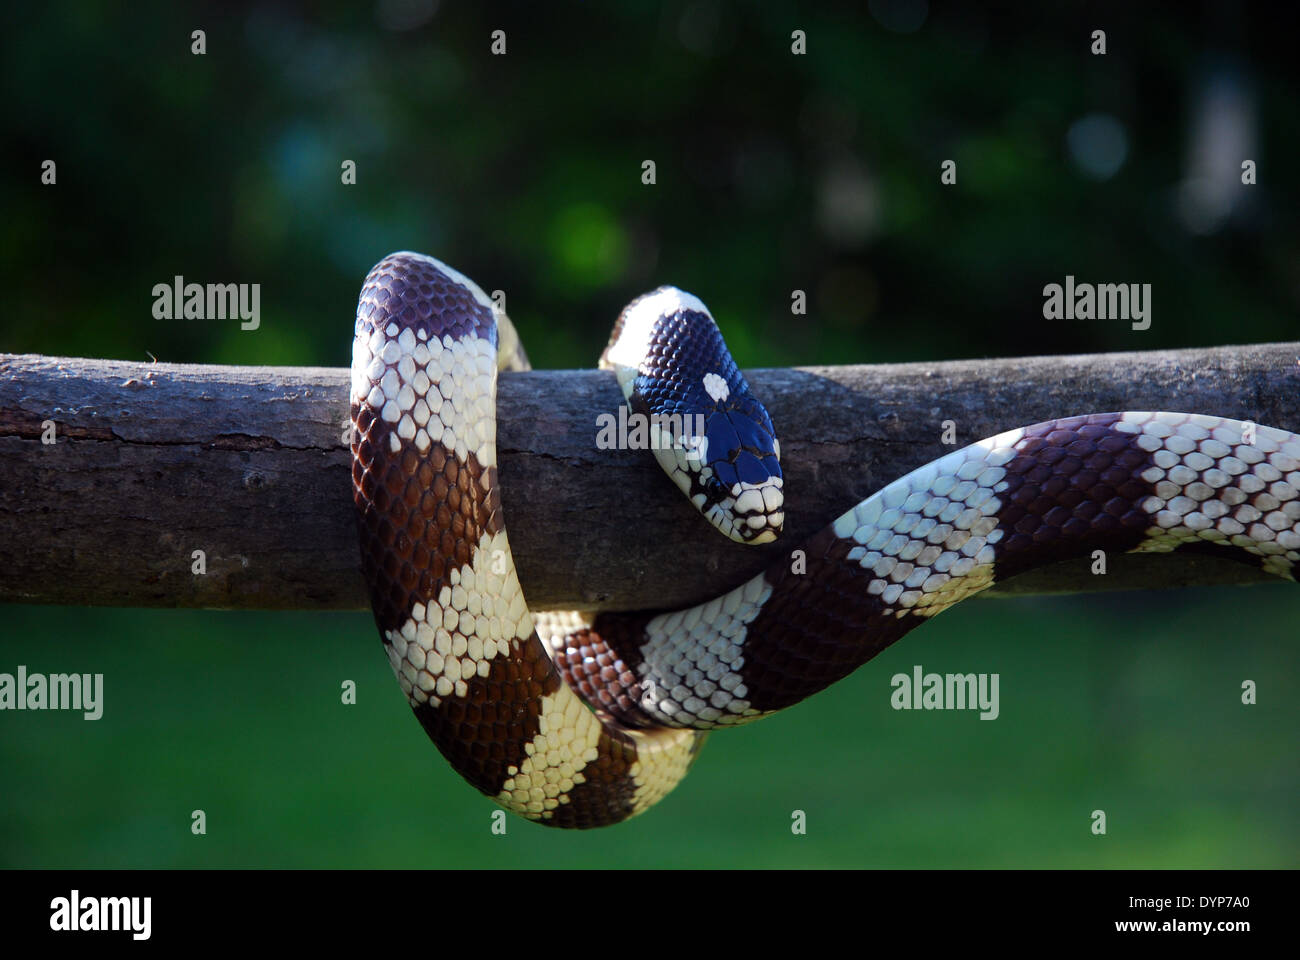 Black & white California King Snake hanging vertically on stick outdoors with green background. - Stock Image